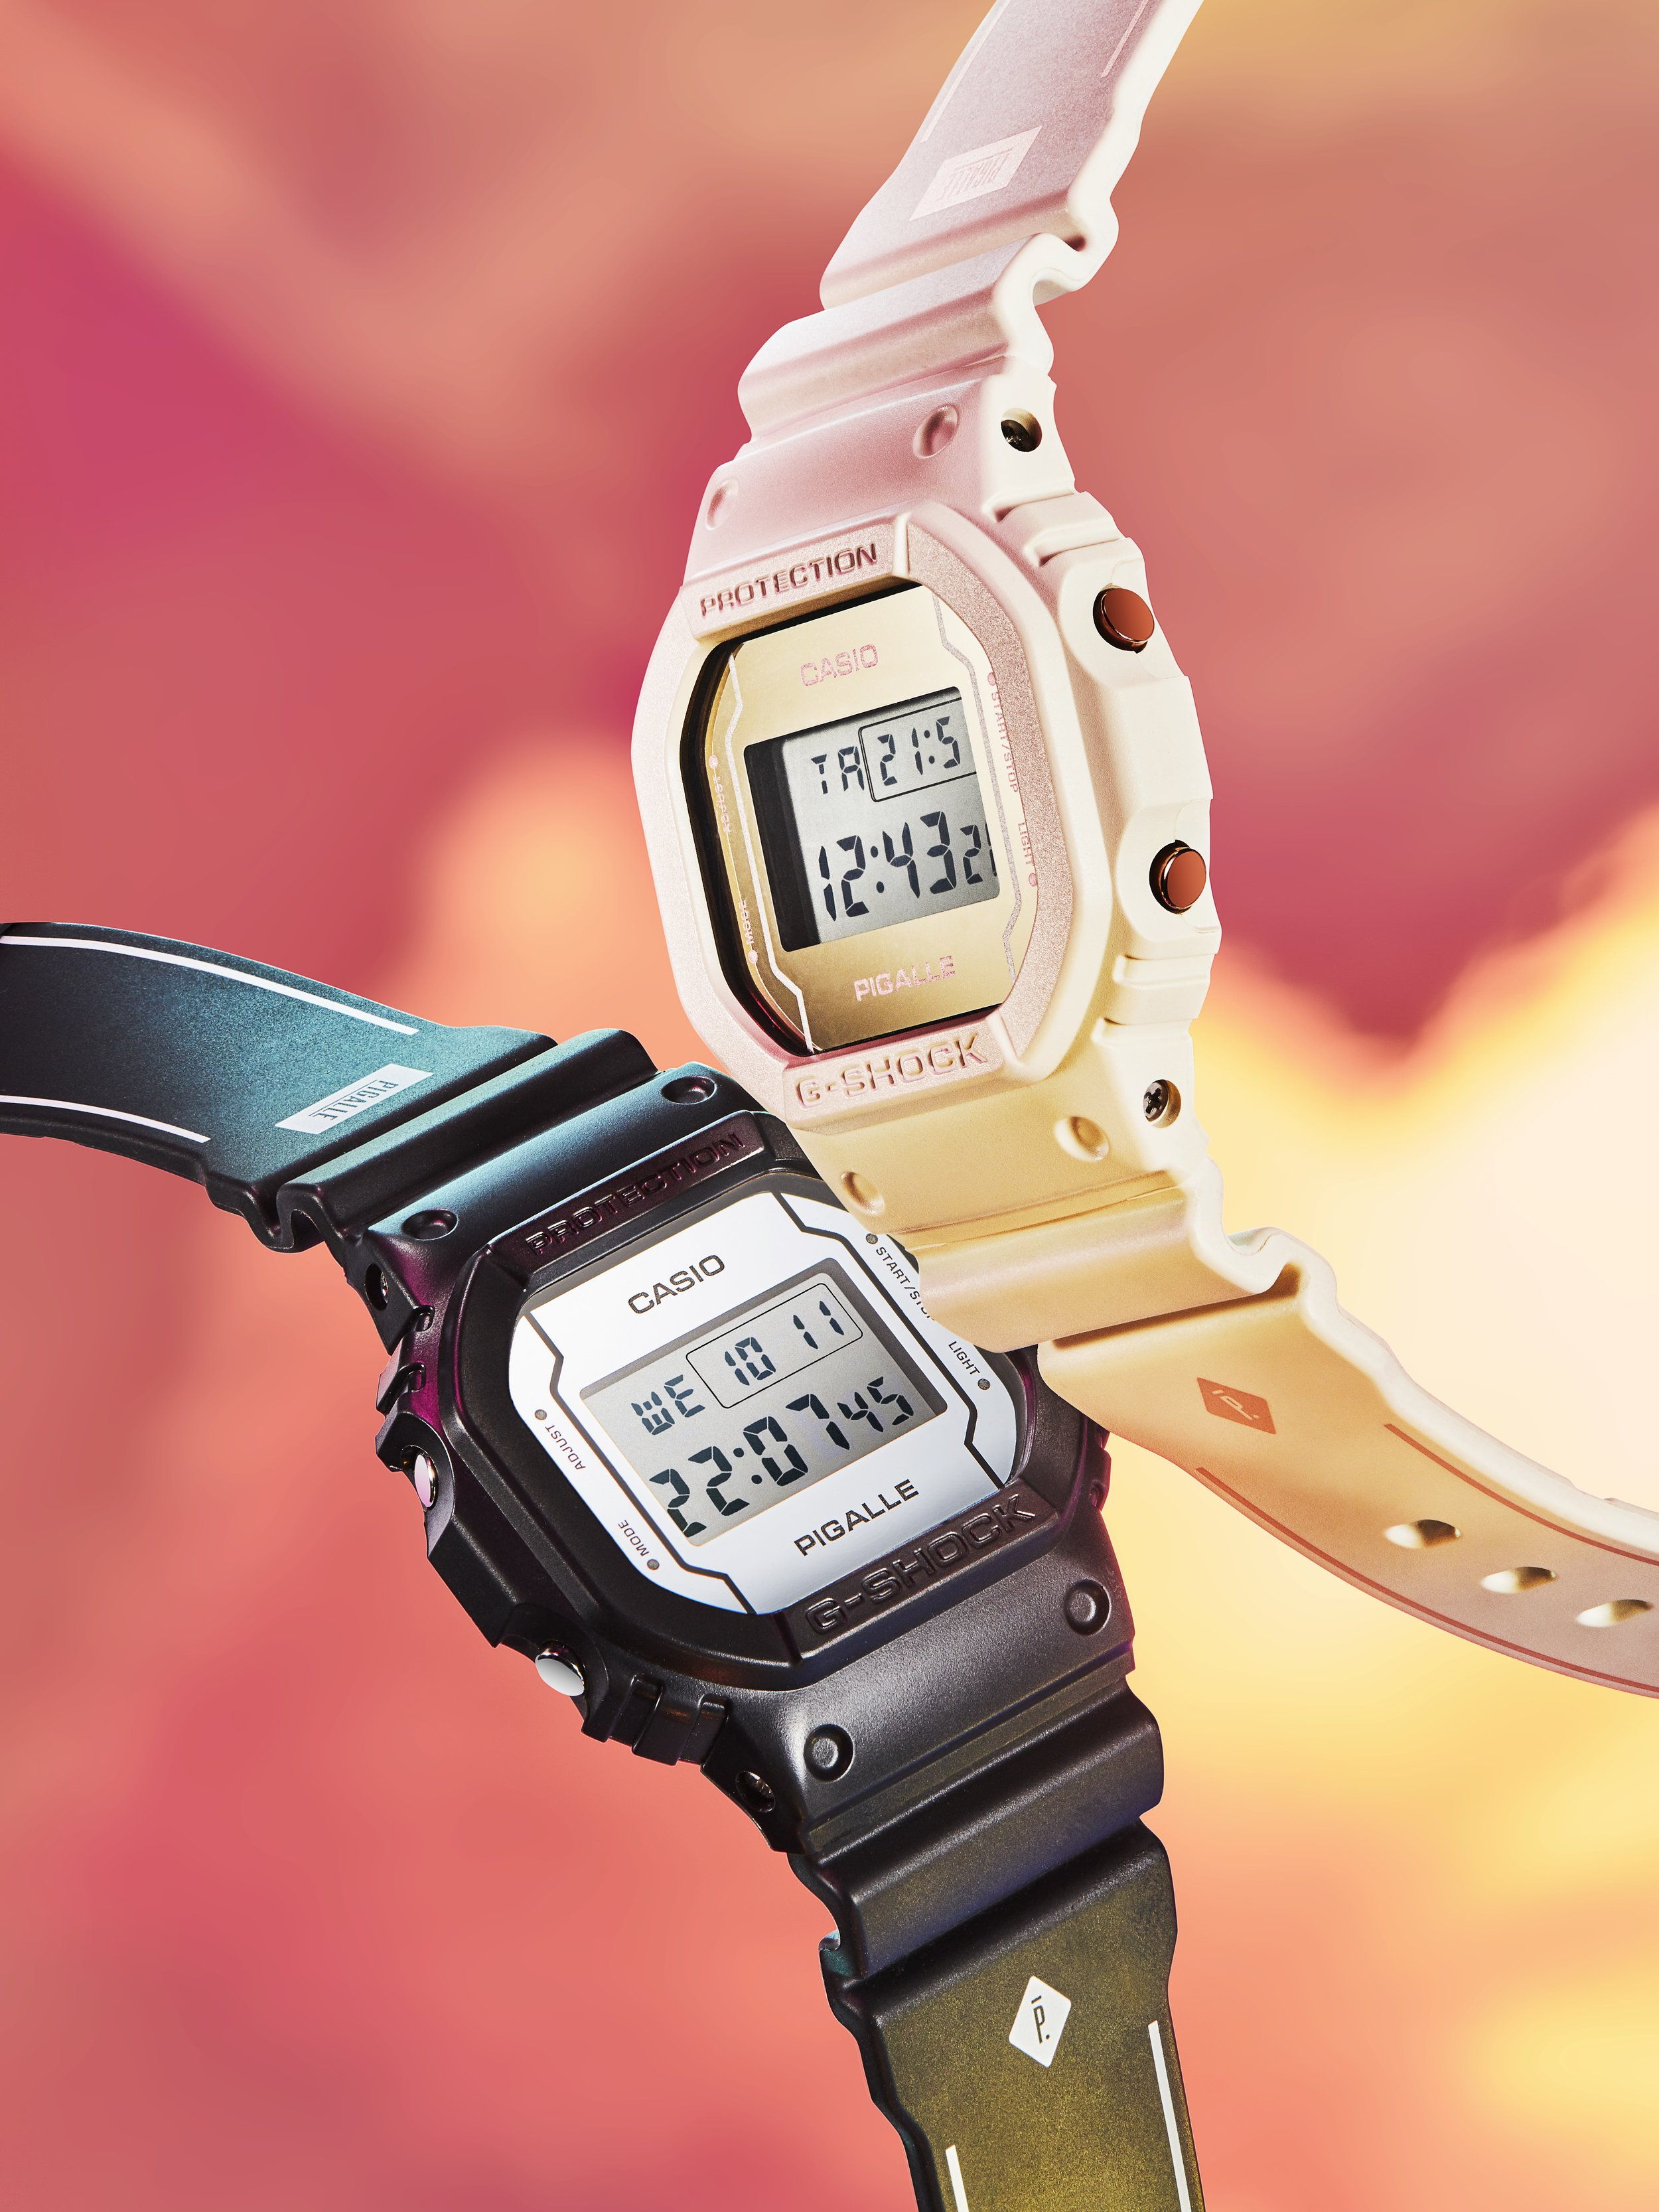 BOLD_G-SHOCK_CasioPigalle_duo_(c)Younès Klouche.jpg